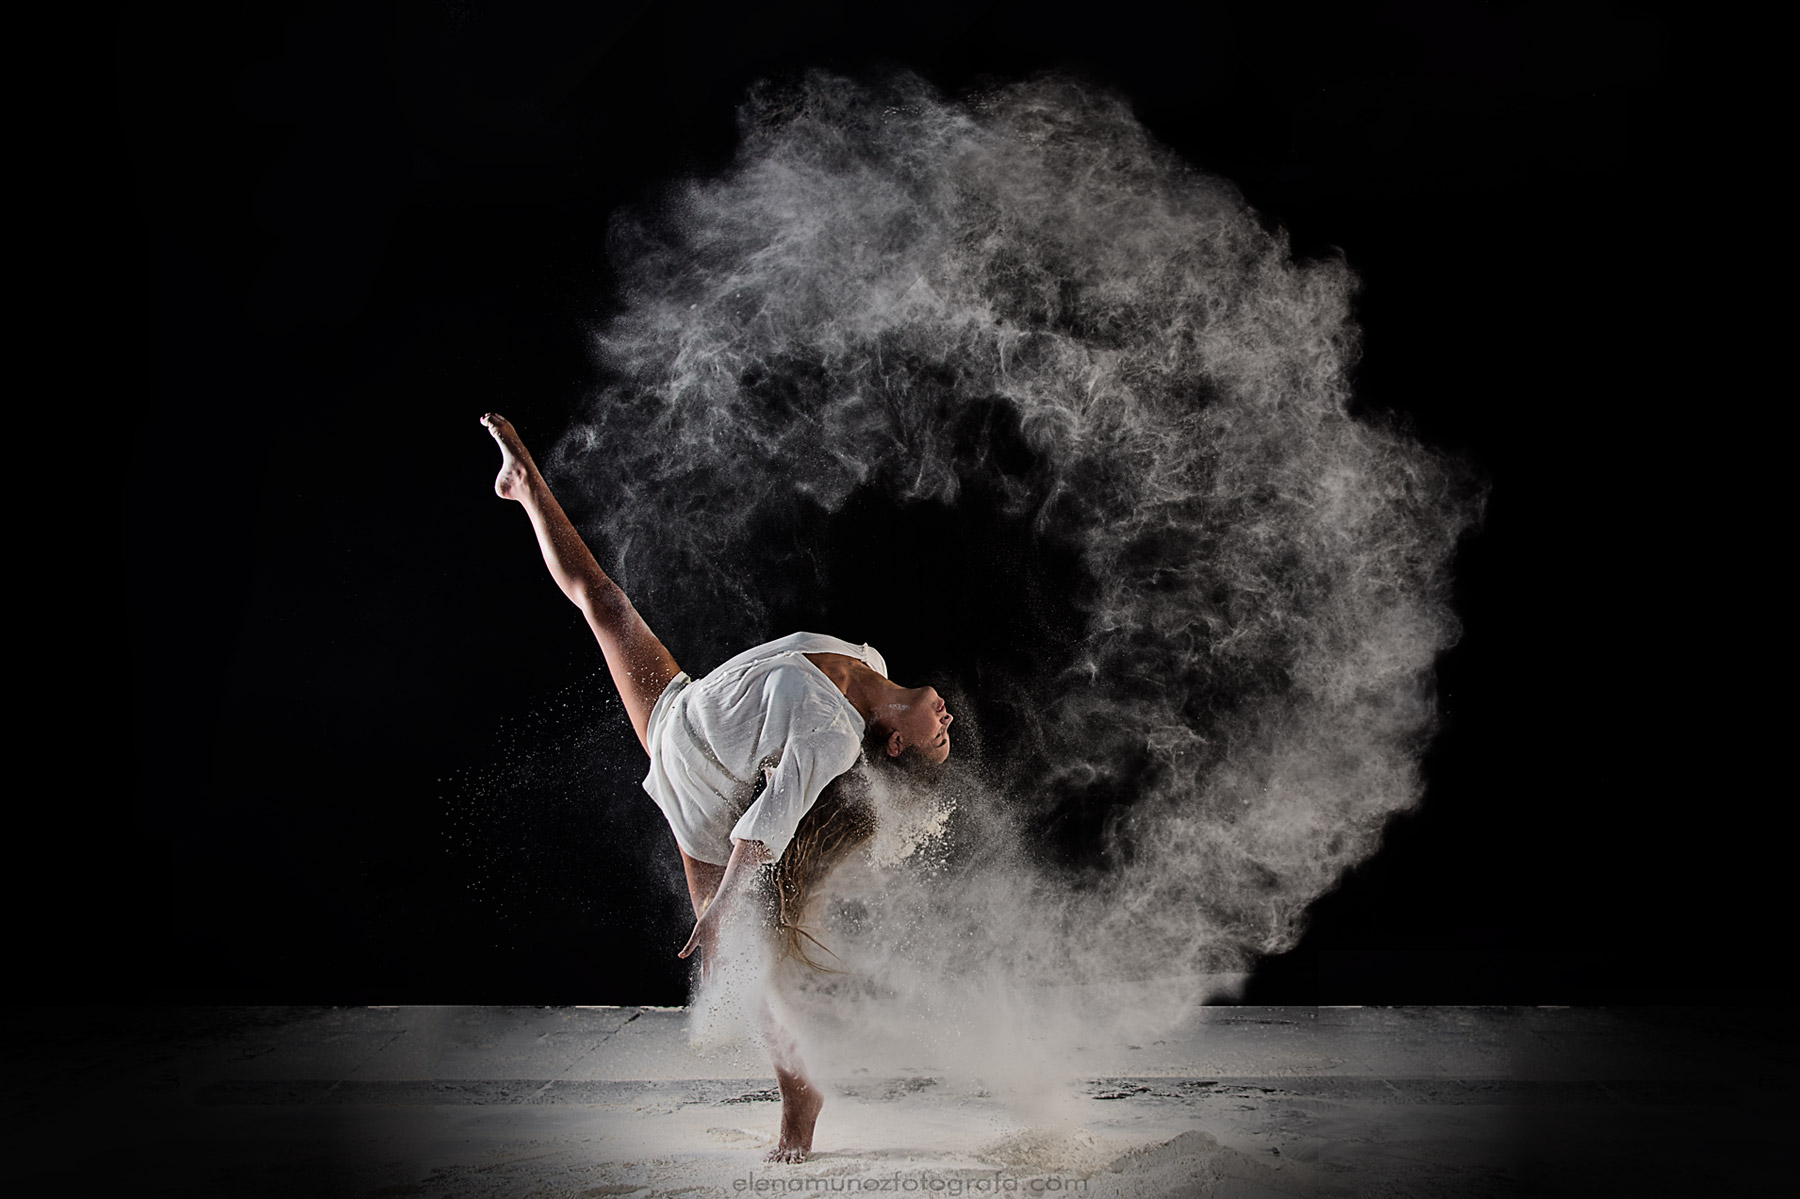 Flour dance photography.